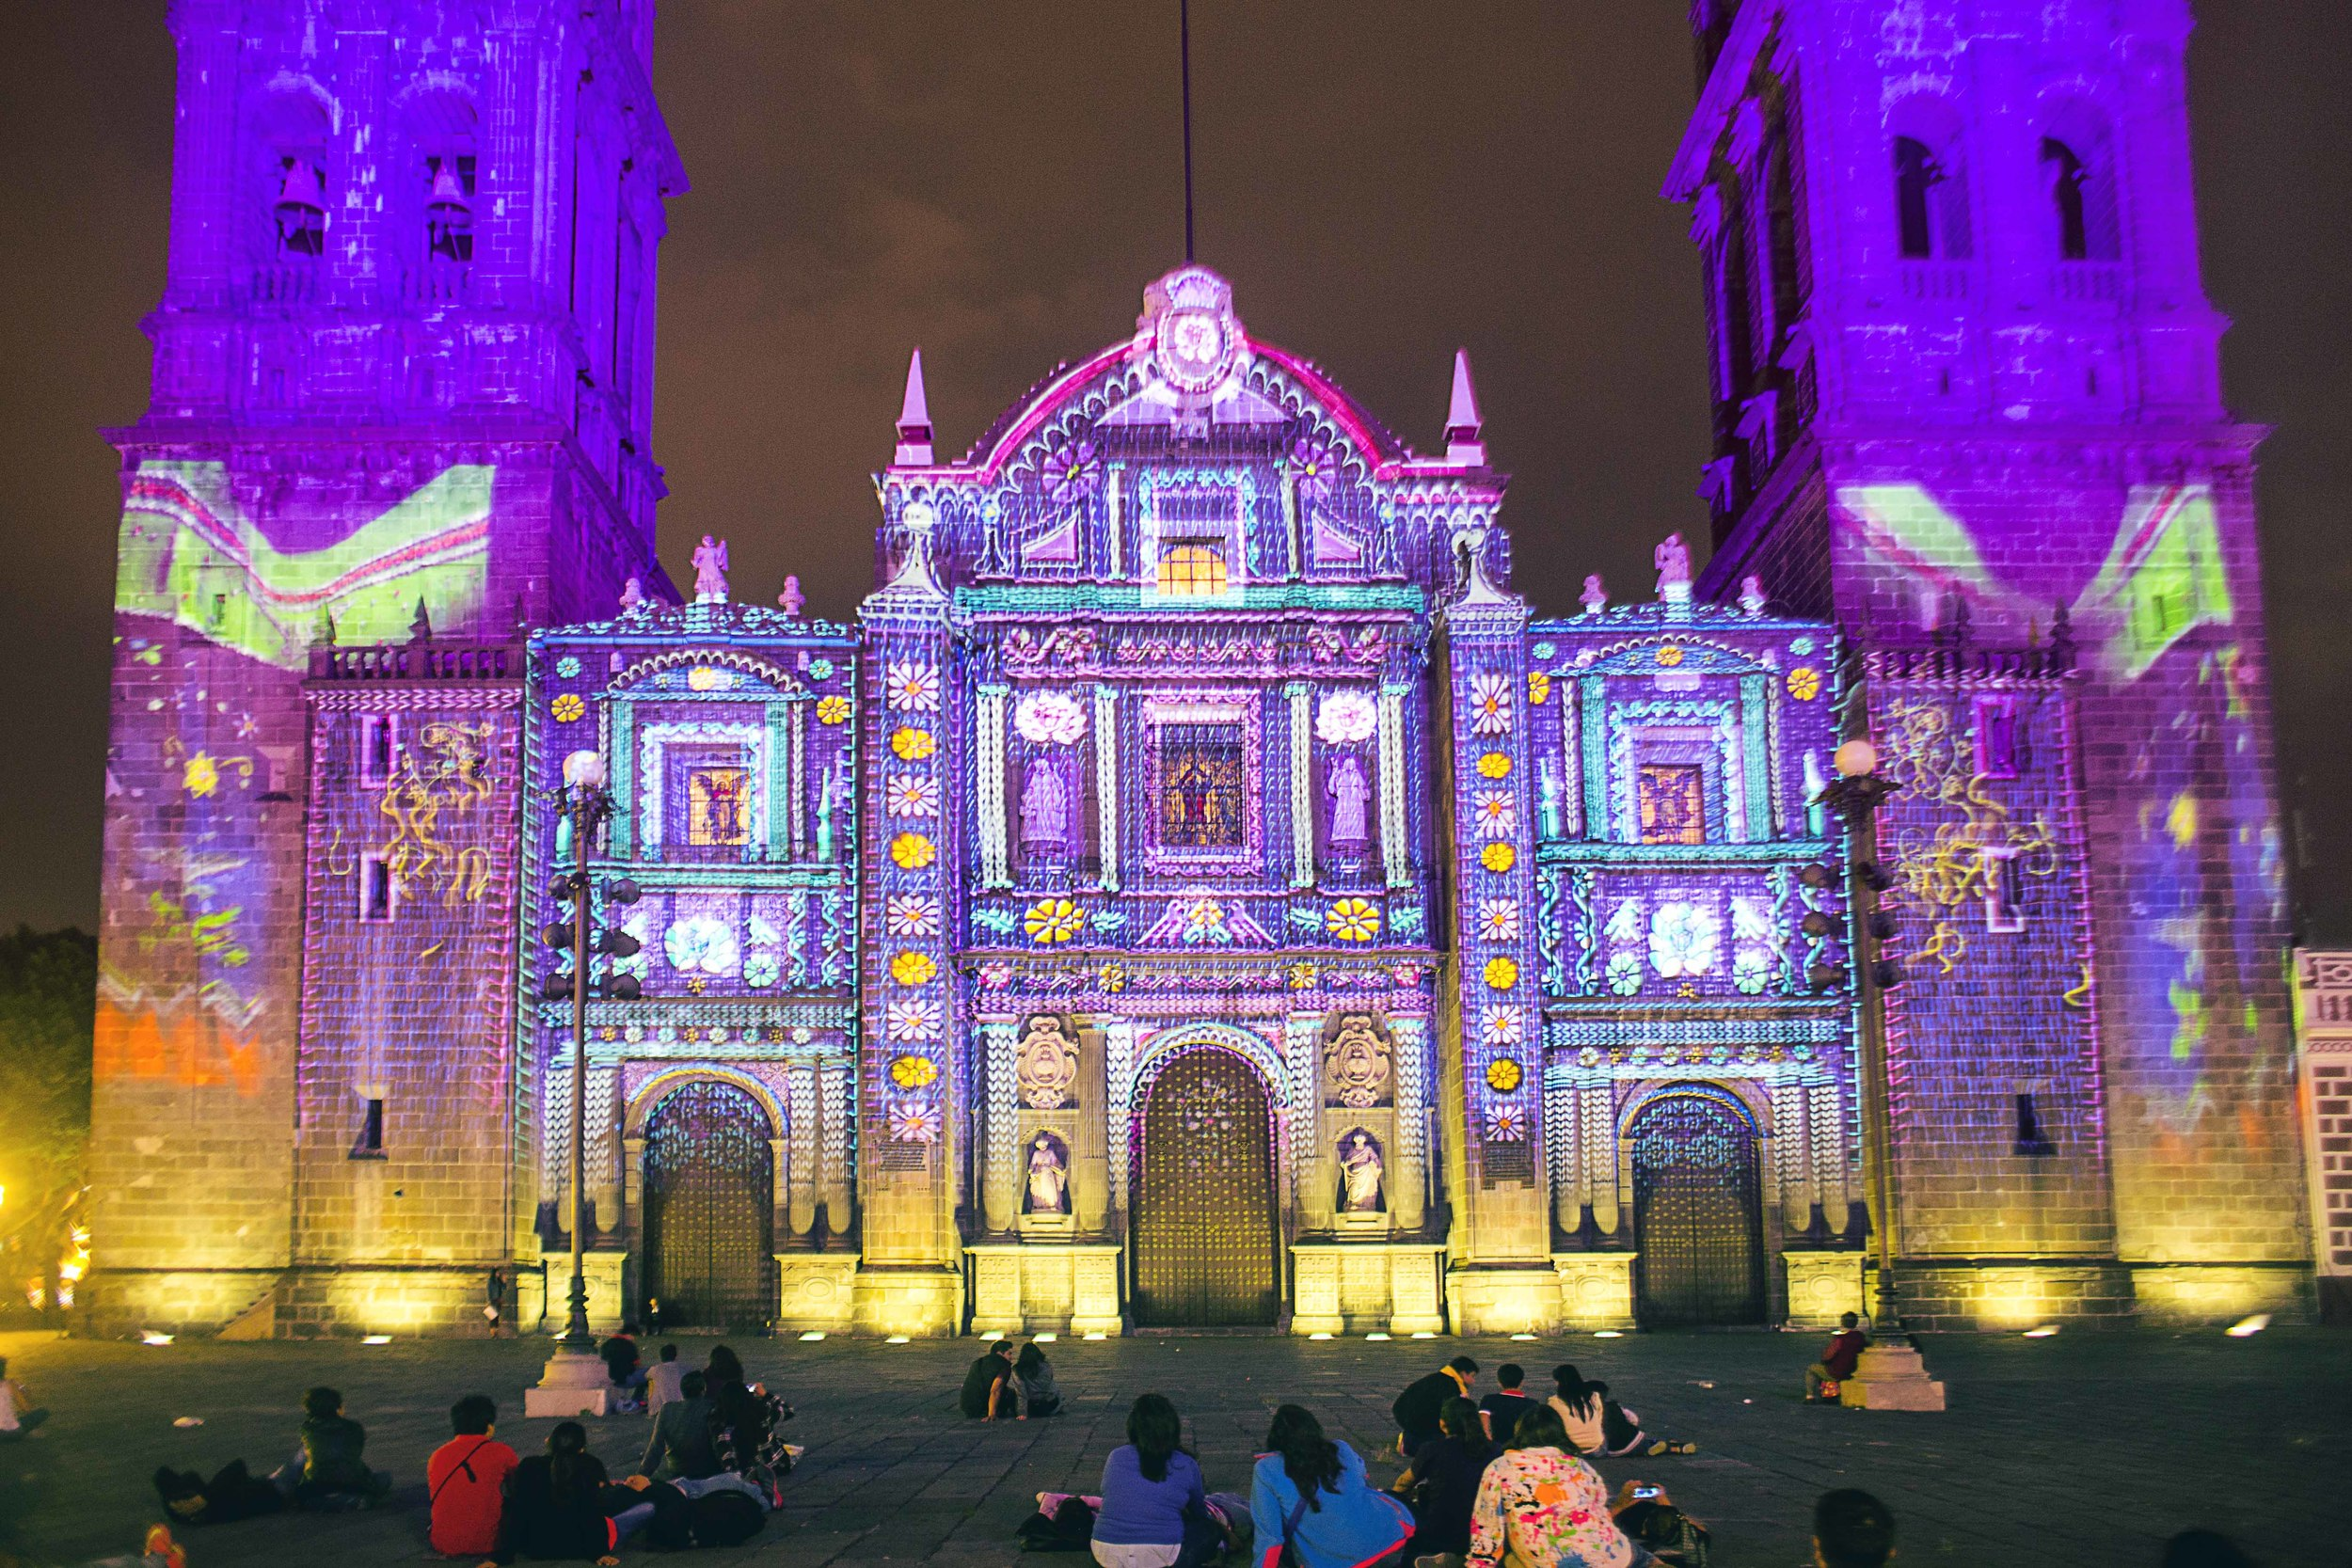 Day 97 - Puebla, Puebla, Mexico   May  1, 2015   A special presentation was projected on Puebla's main cathedral displaying Puebla's history, Talavera and other festive images to prepare for the upcoming  Cinco de Mayo celebrations that will continue for the whole month of May.